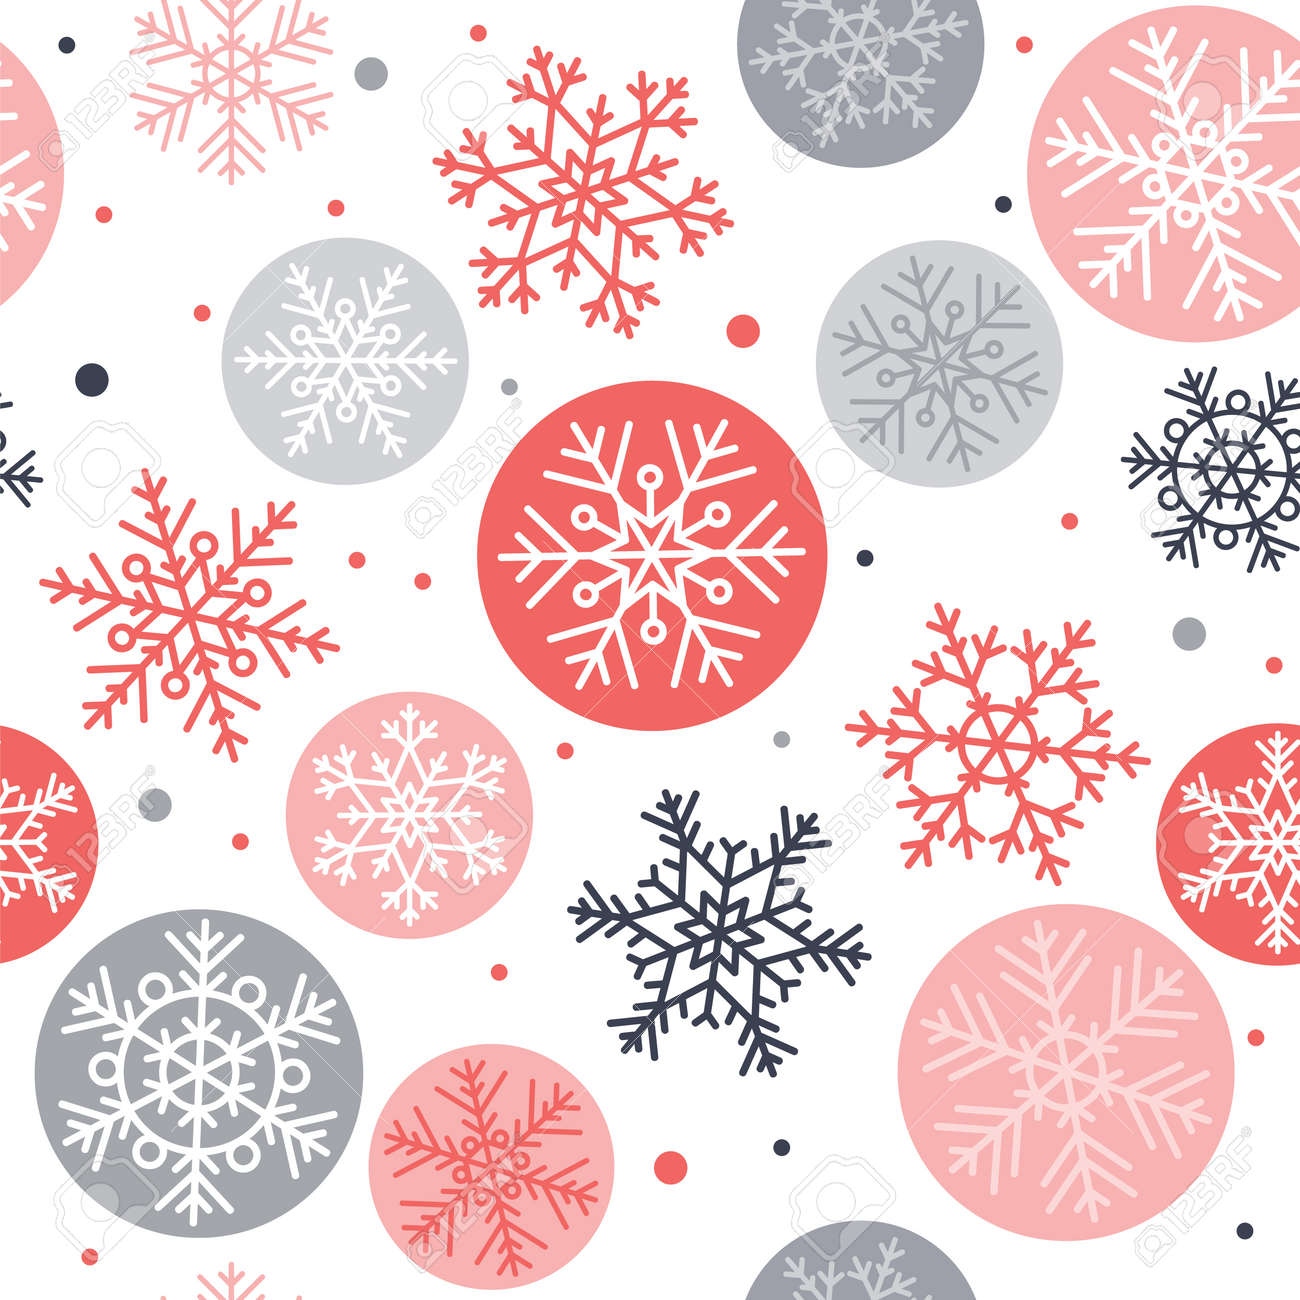 Snowflakes seamless pattern, winter concept vector illustration - 158353196